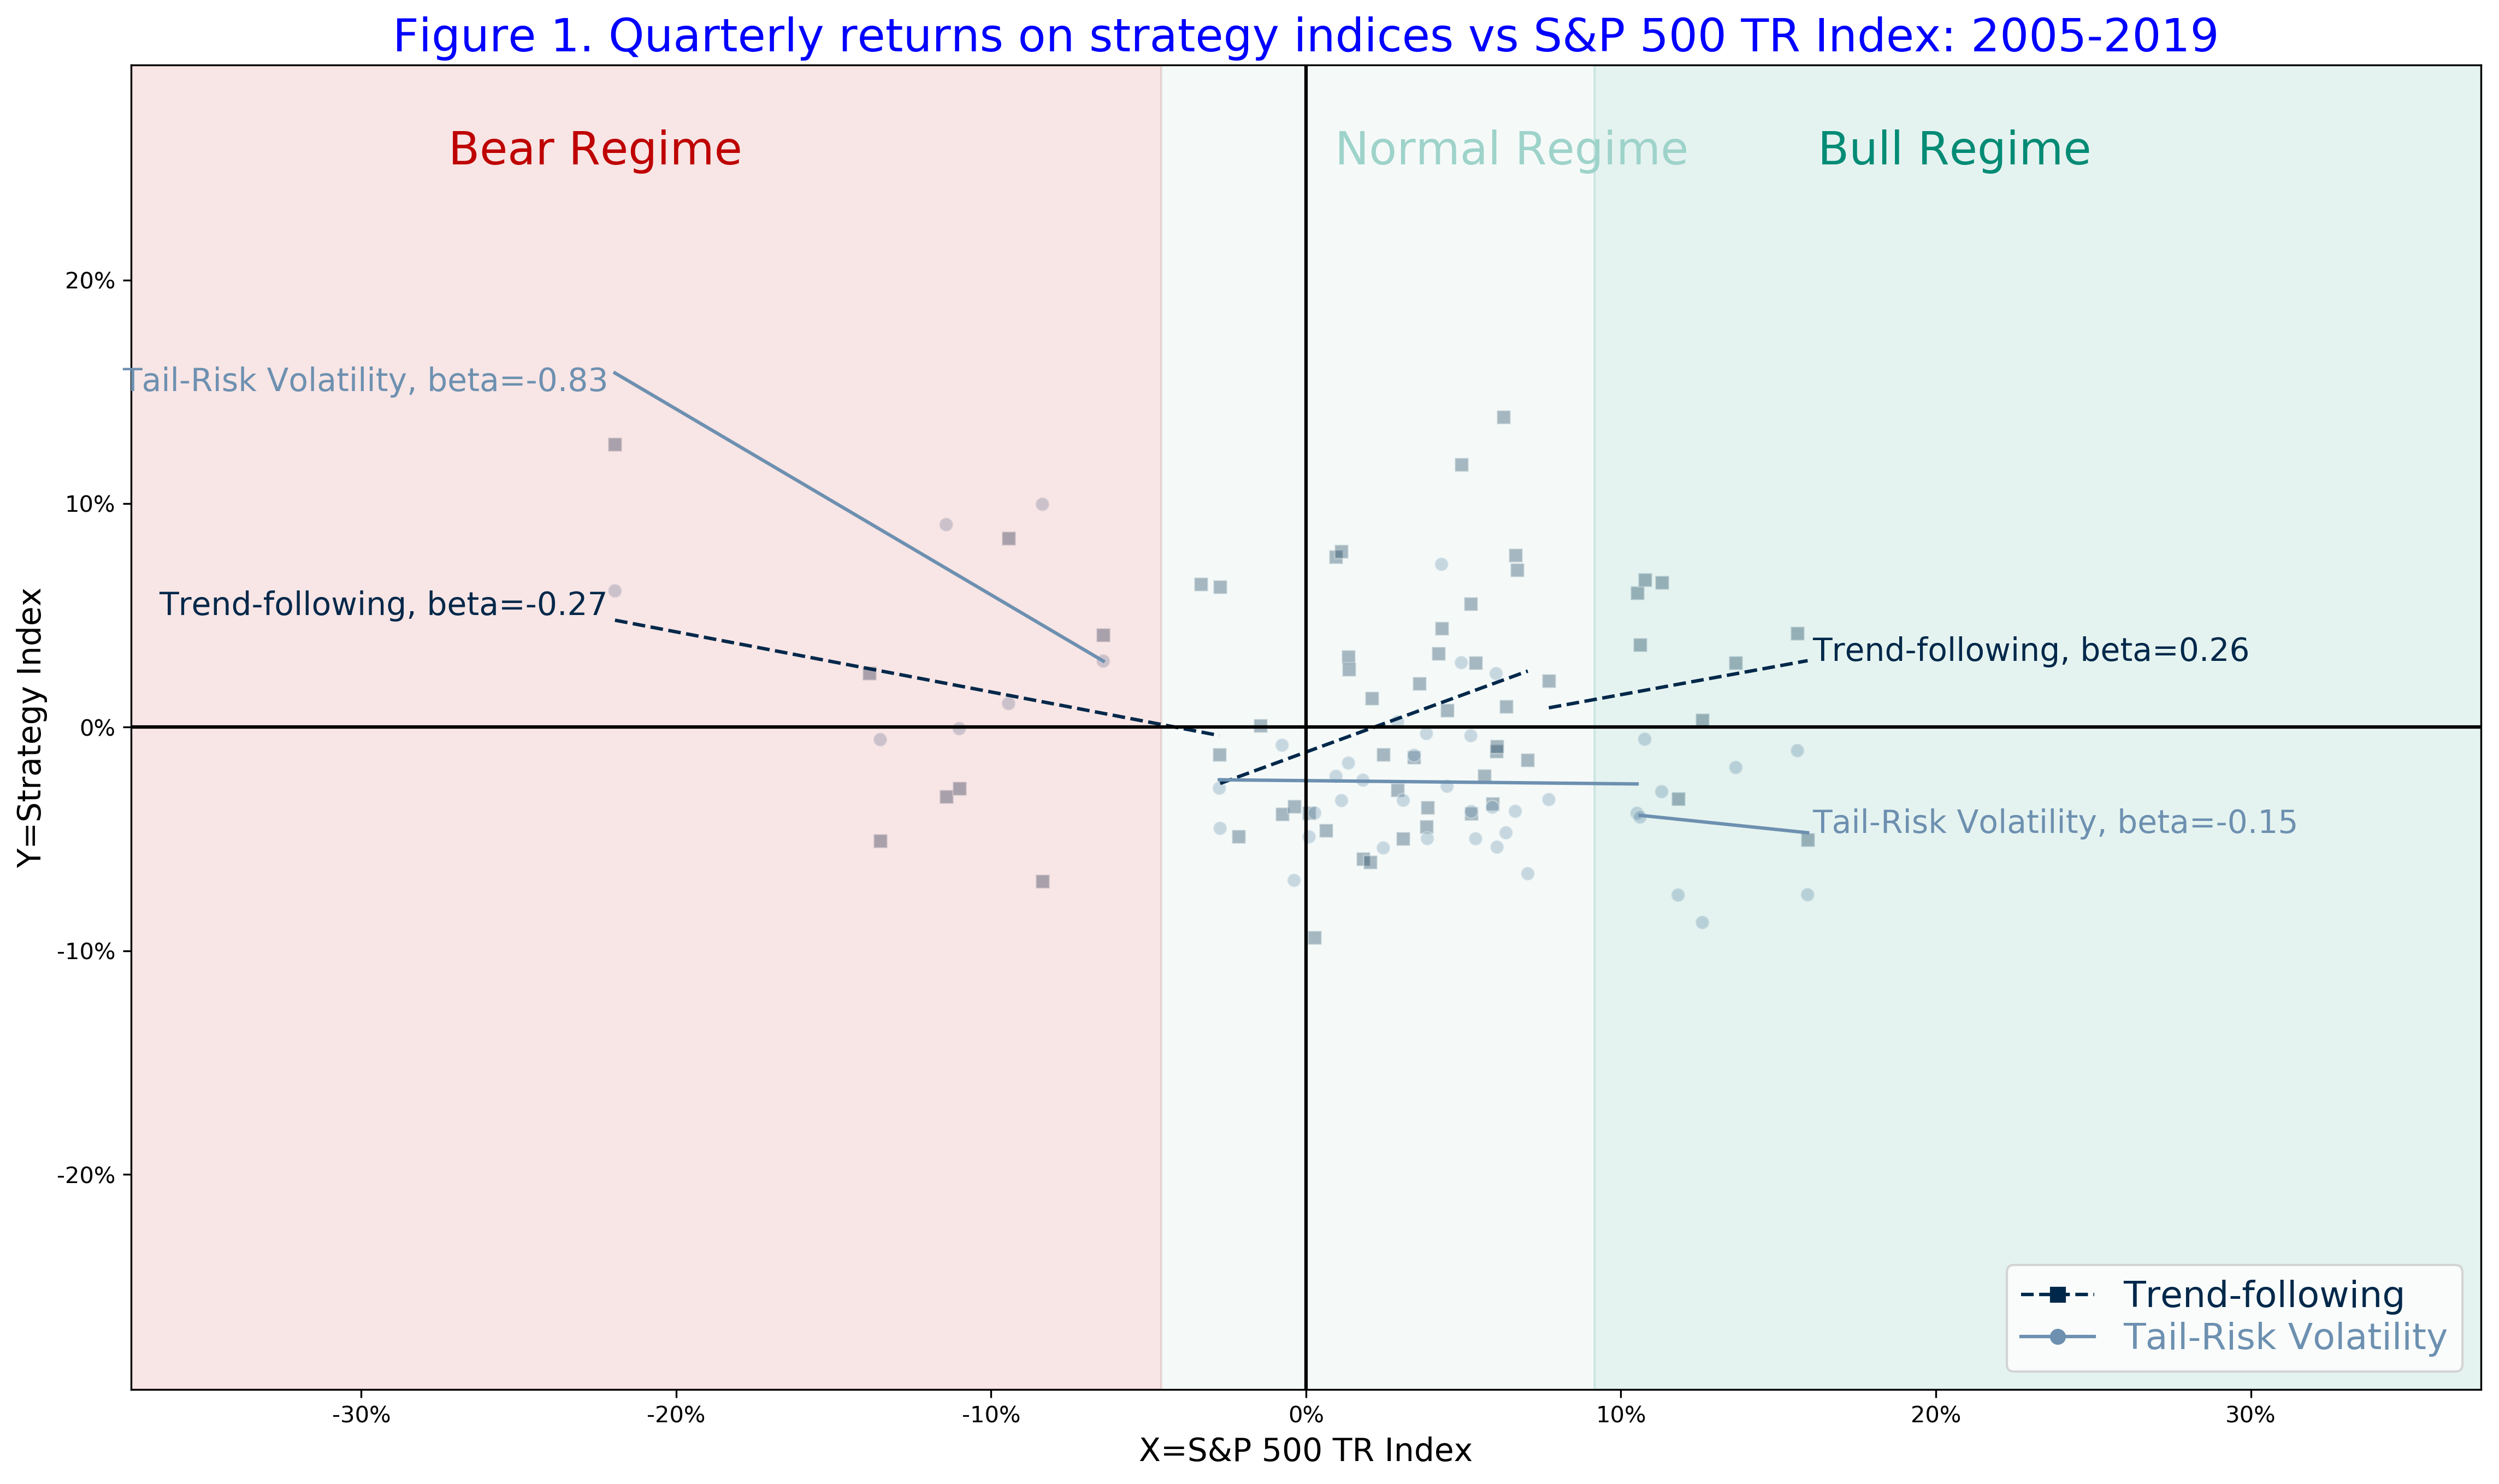 Figure 1 Quarterly returns on strategy indices vs S&P 500 TR index 2005-2019